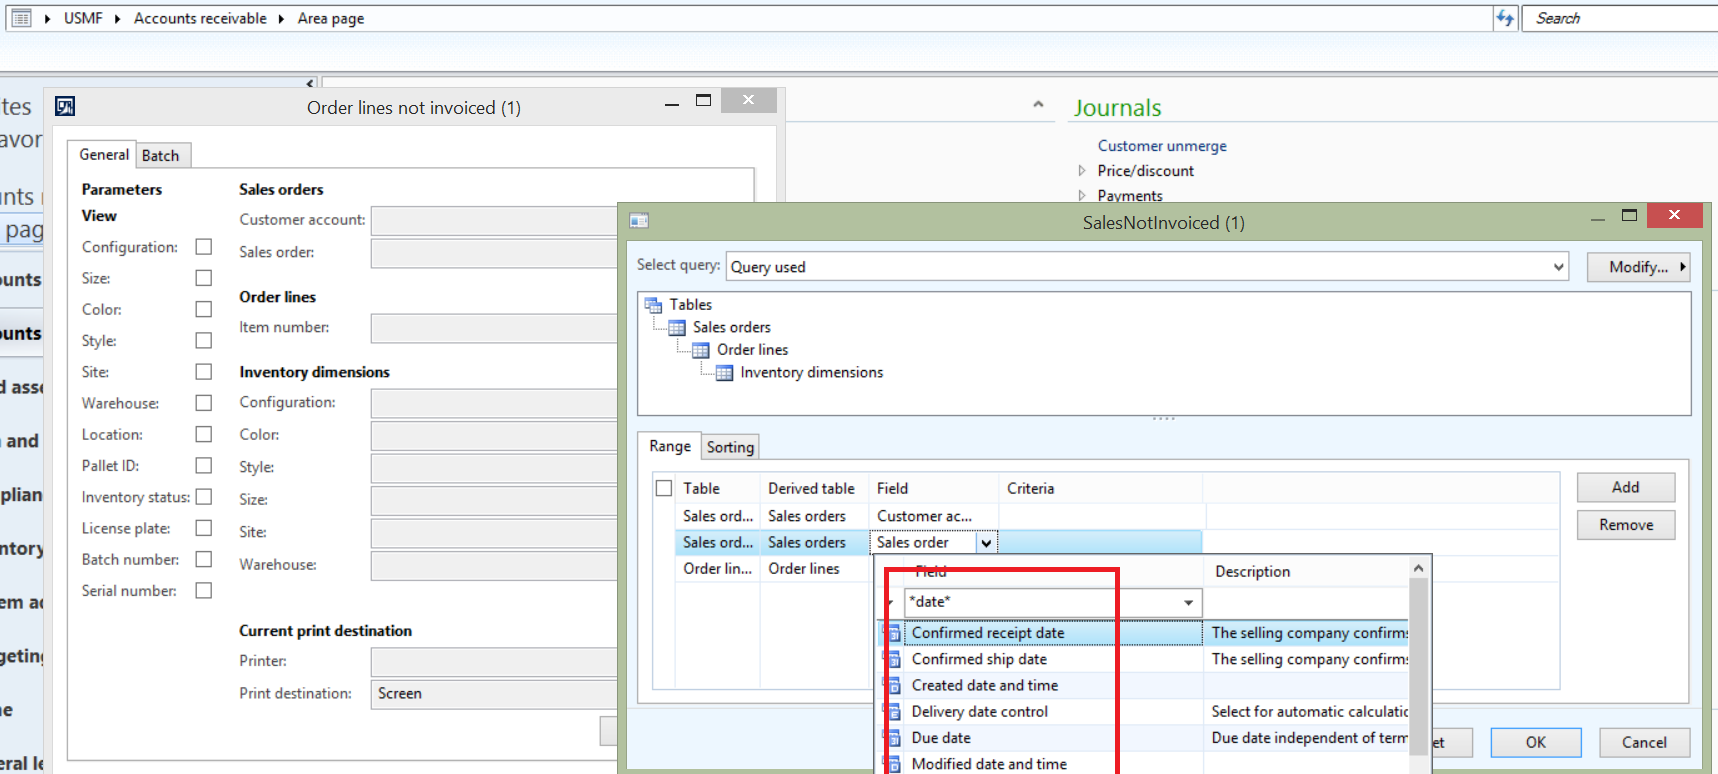 Sales order line not invoice report - Microsoft Dynamics AX Forum